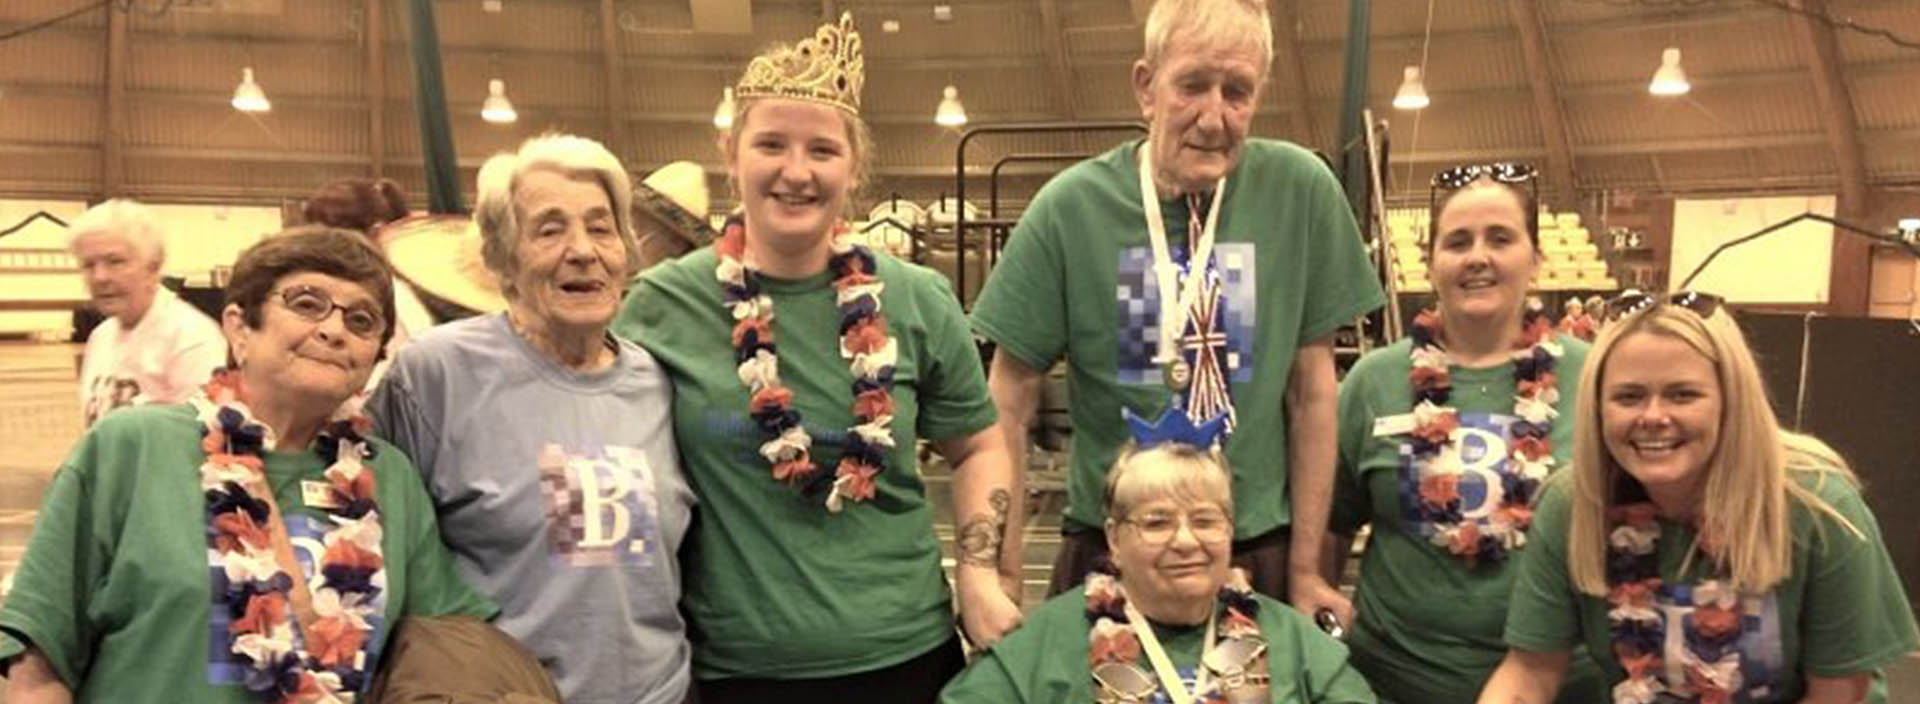 Stormont Lodge care home residents take home medals in Perthshire challenge